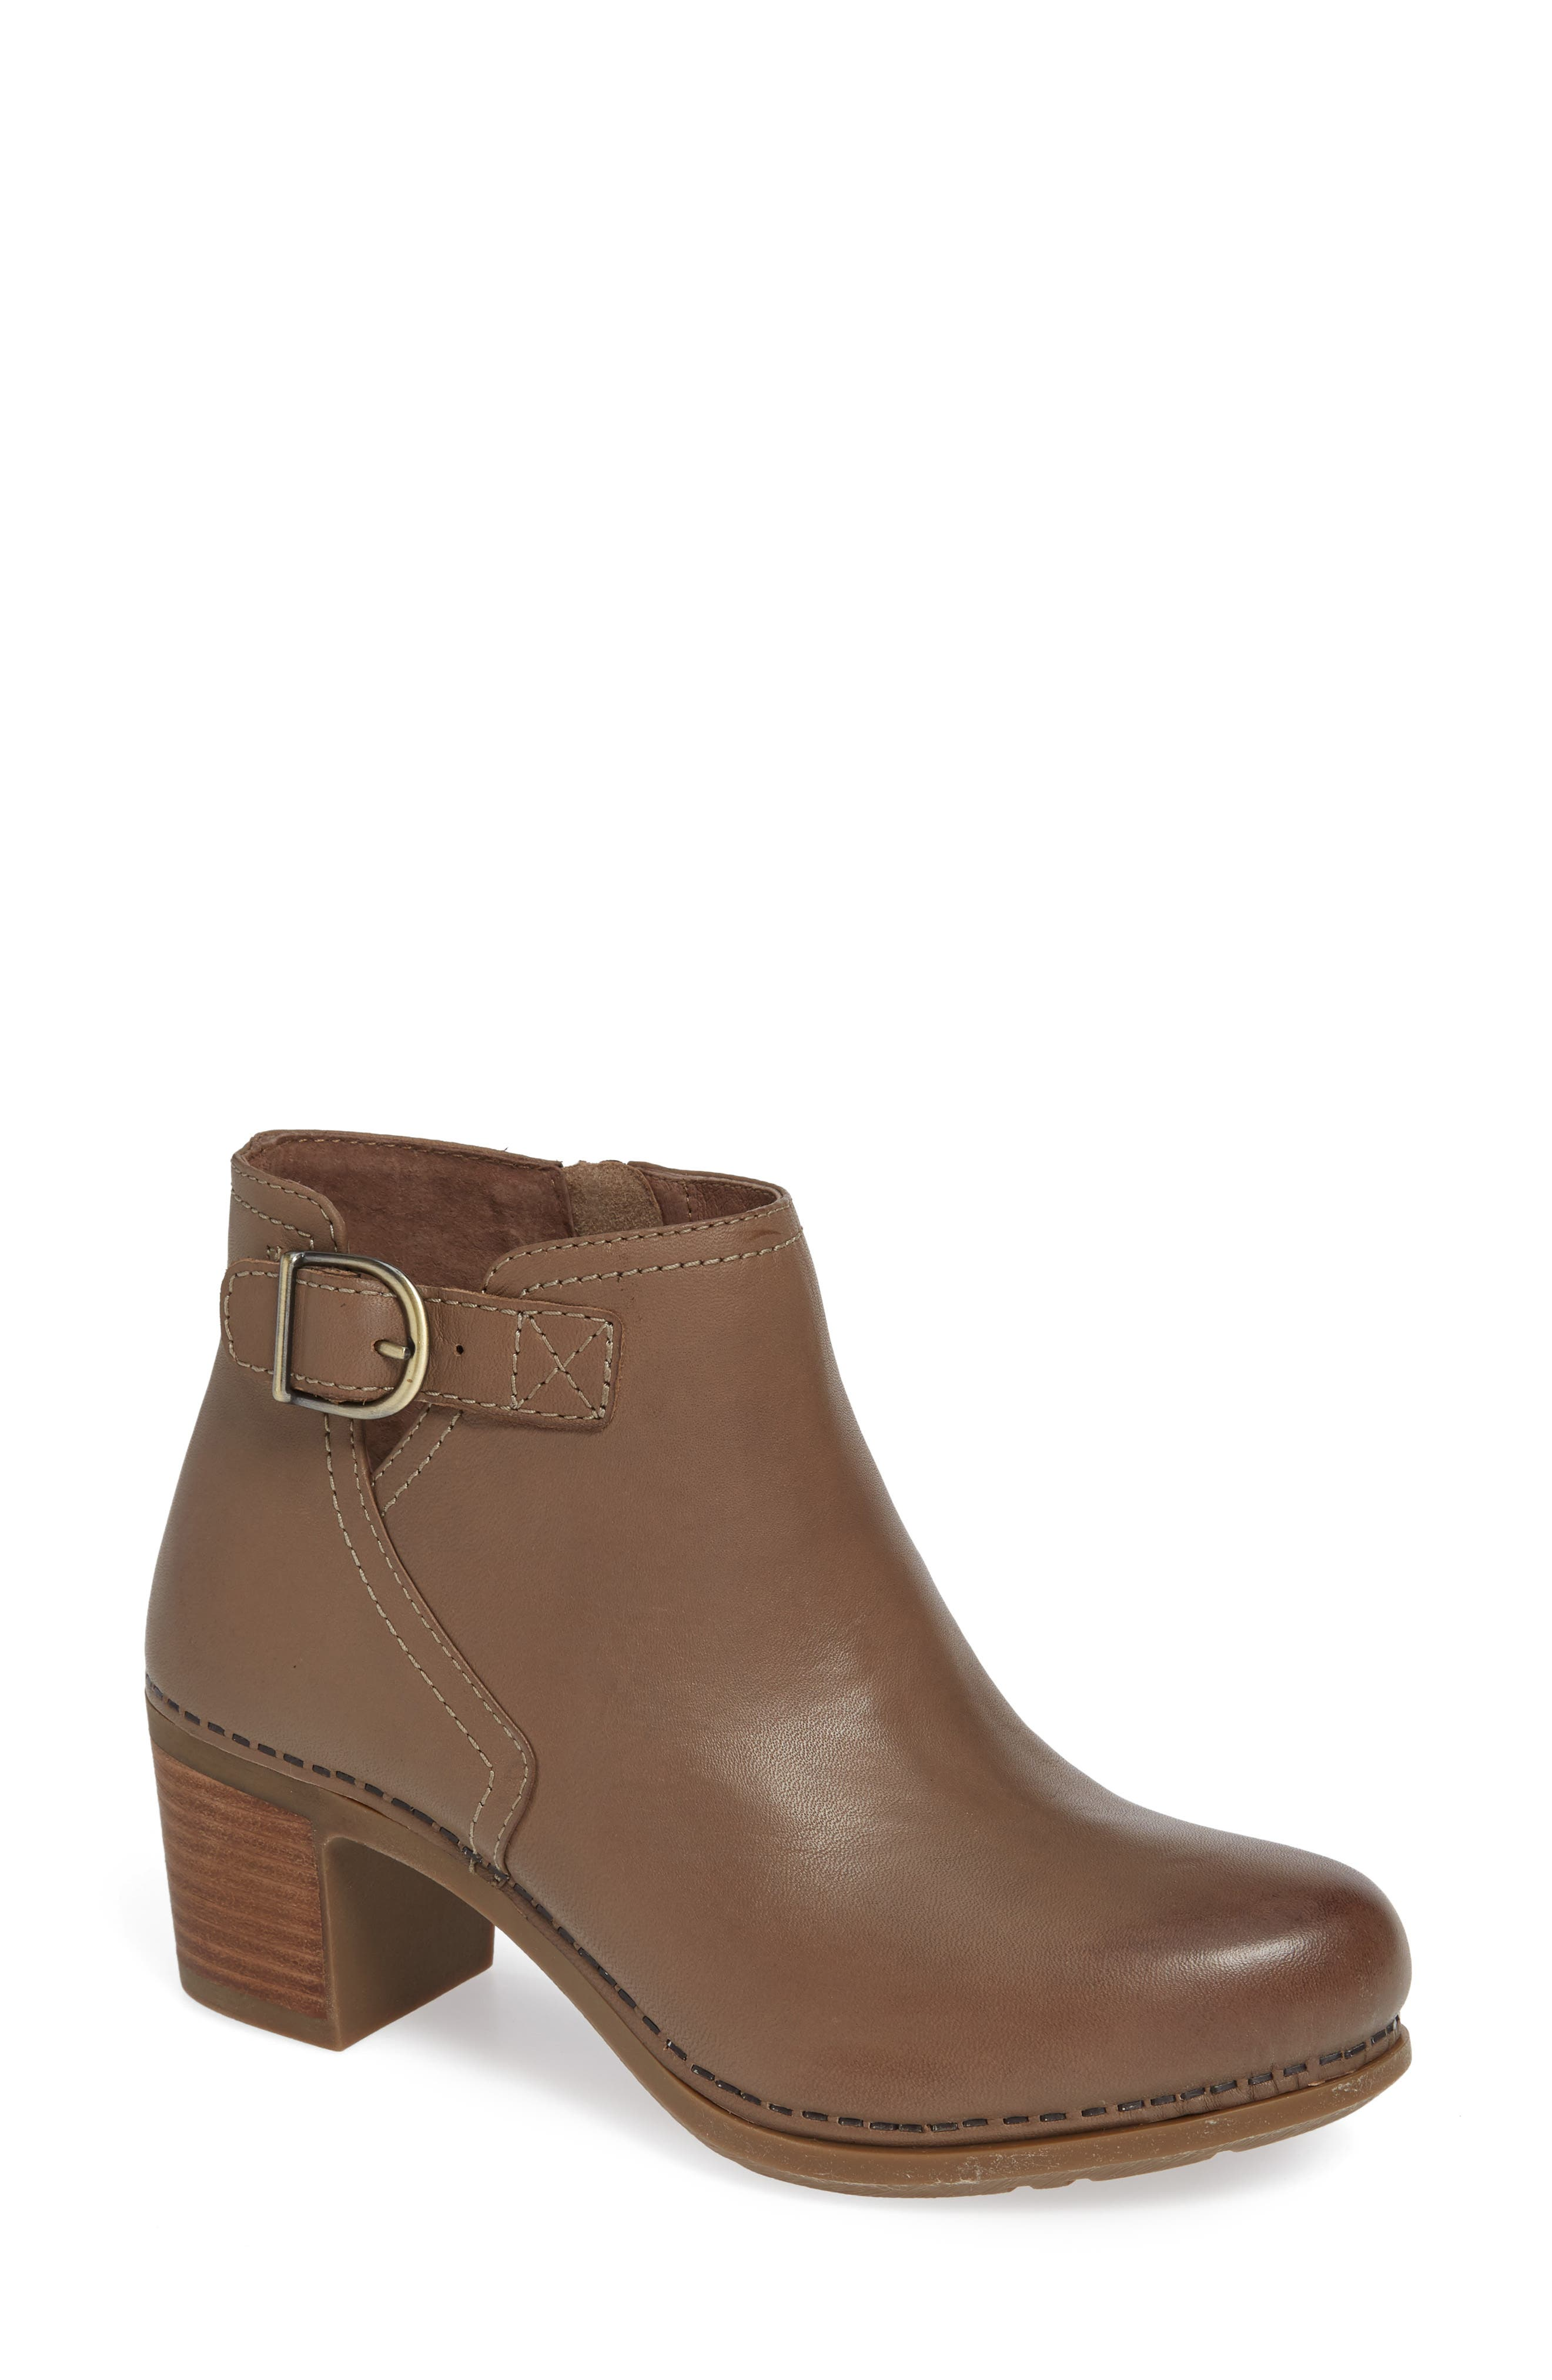 Henley Bootie,                         Main,                         color, TAUPE LEATHER